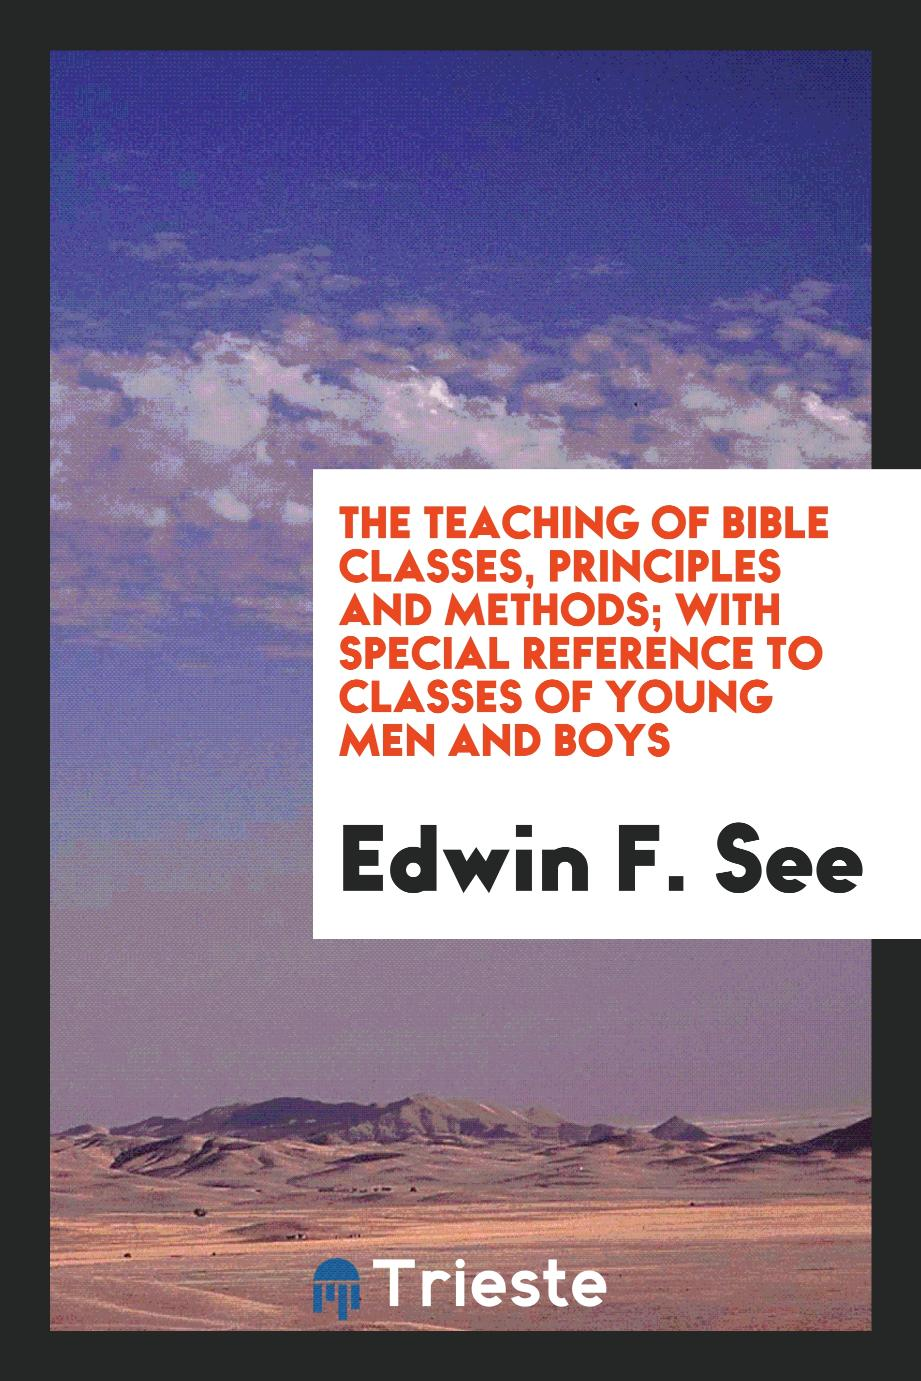 The teaching of Bible classes, principles and methods; with special reference to classes of young men and boys